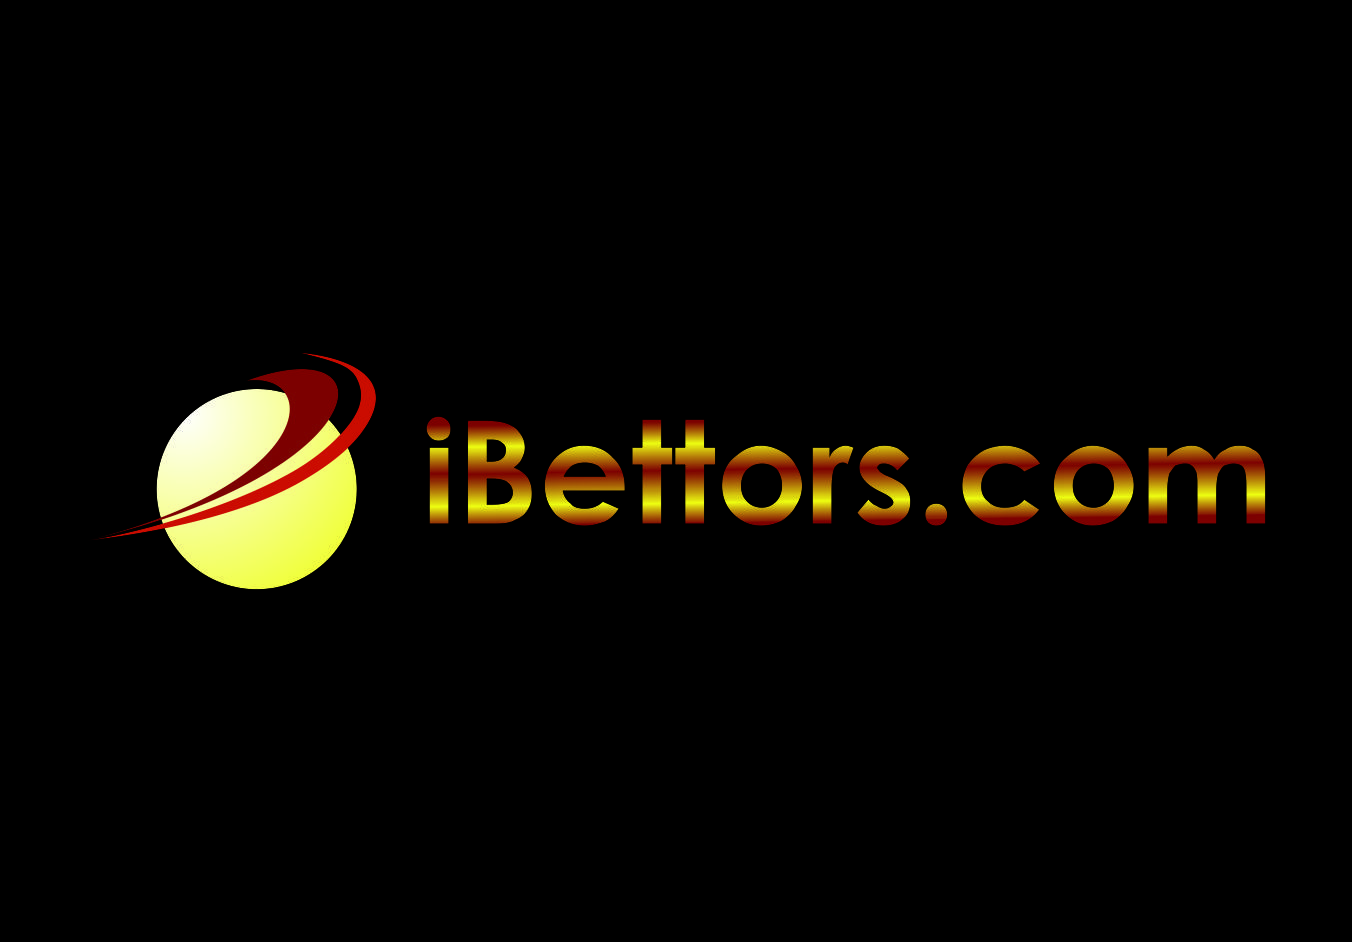 Logo Design by Agus Martoyo - Entry No. 77 in the Logo Design Contest Captivating Logo Design for iBettors.com.